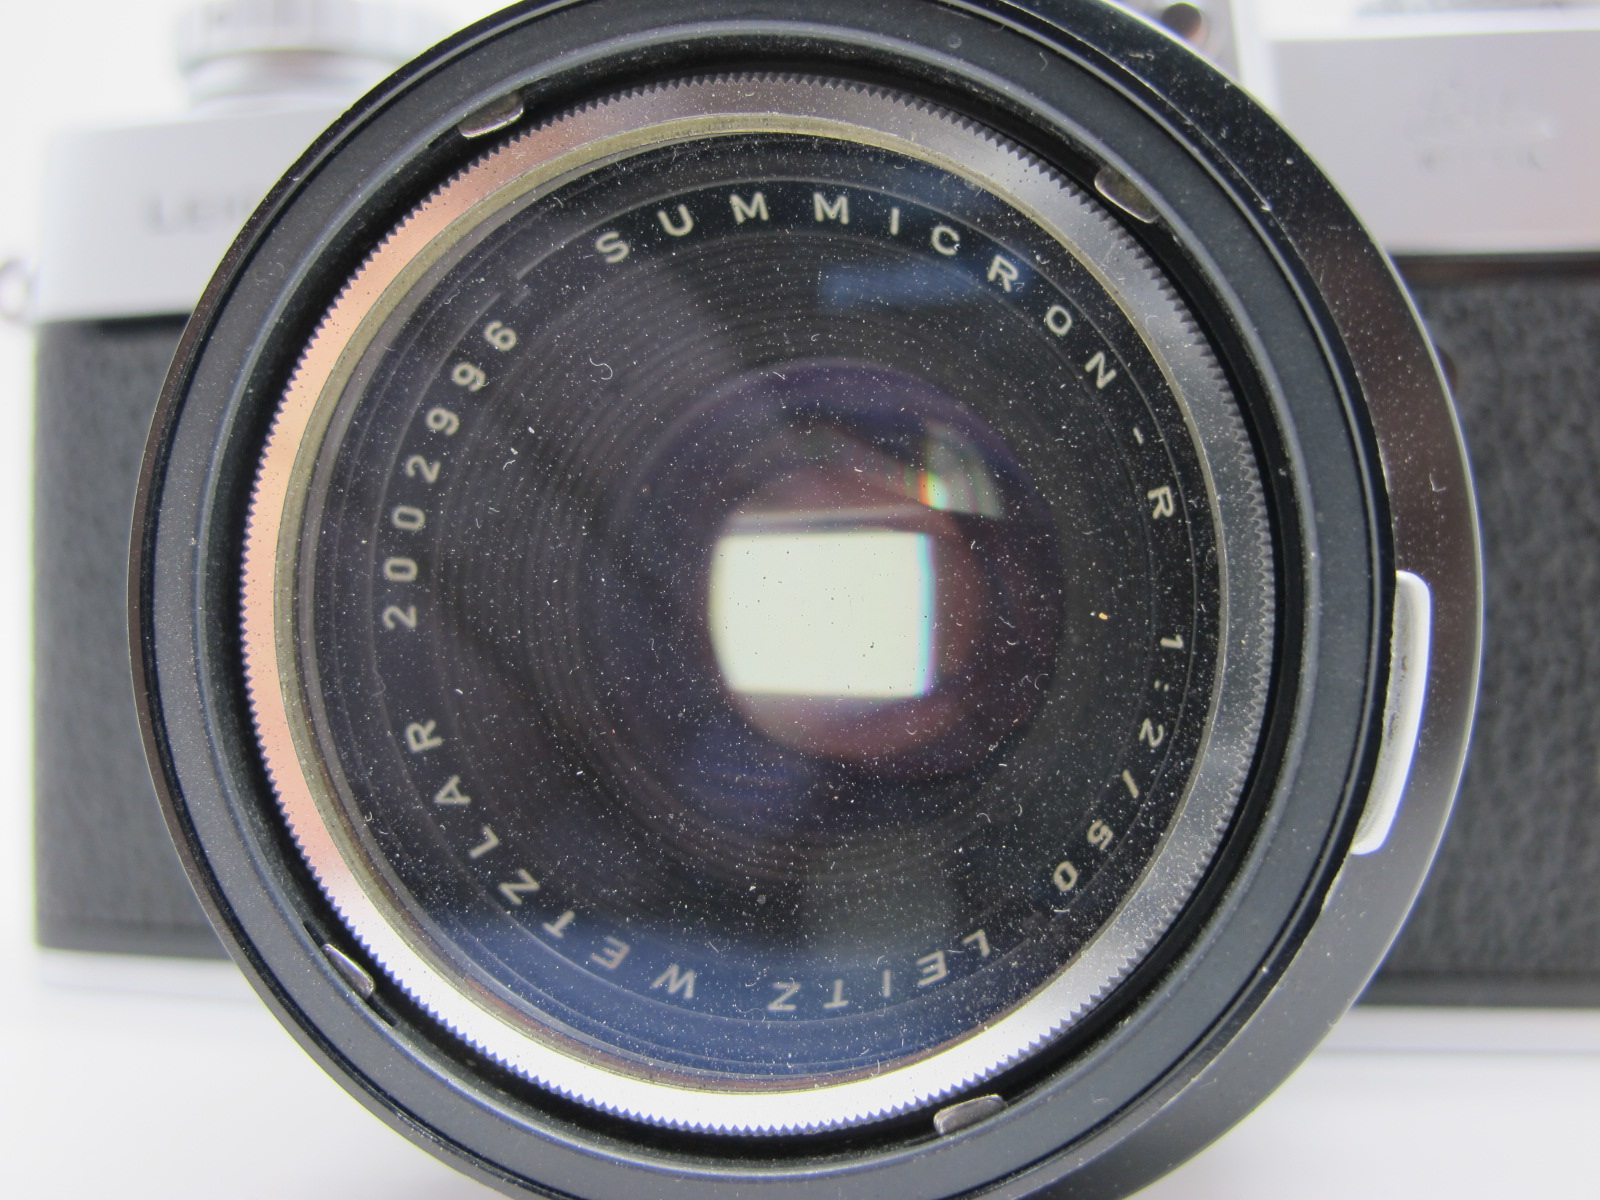 Leicaflex Manual Camera, with Leitz Wetzlar Summicron - R 1:2/50 lens in a black case. - Image 2 of 8